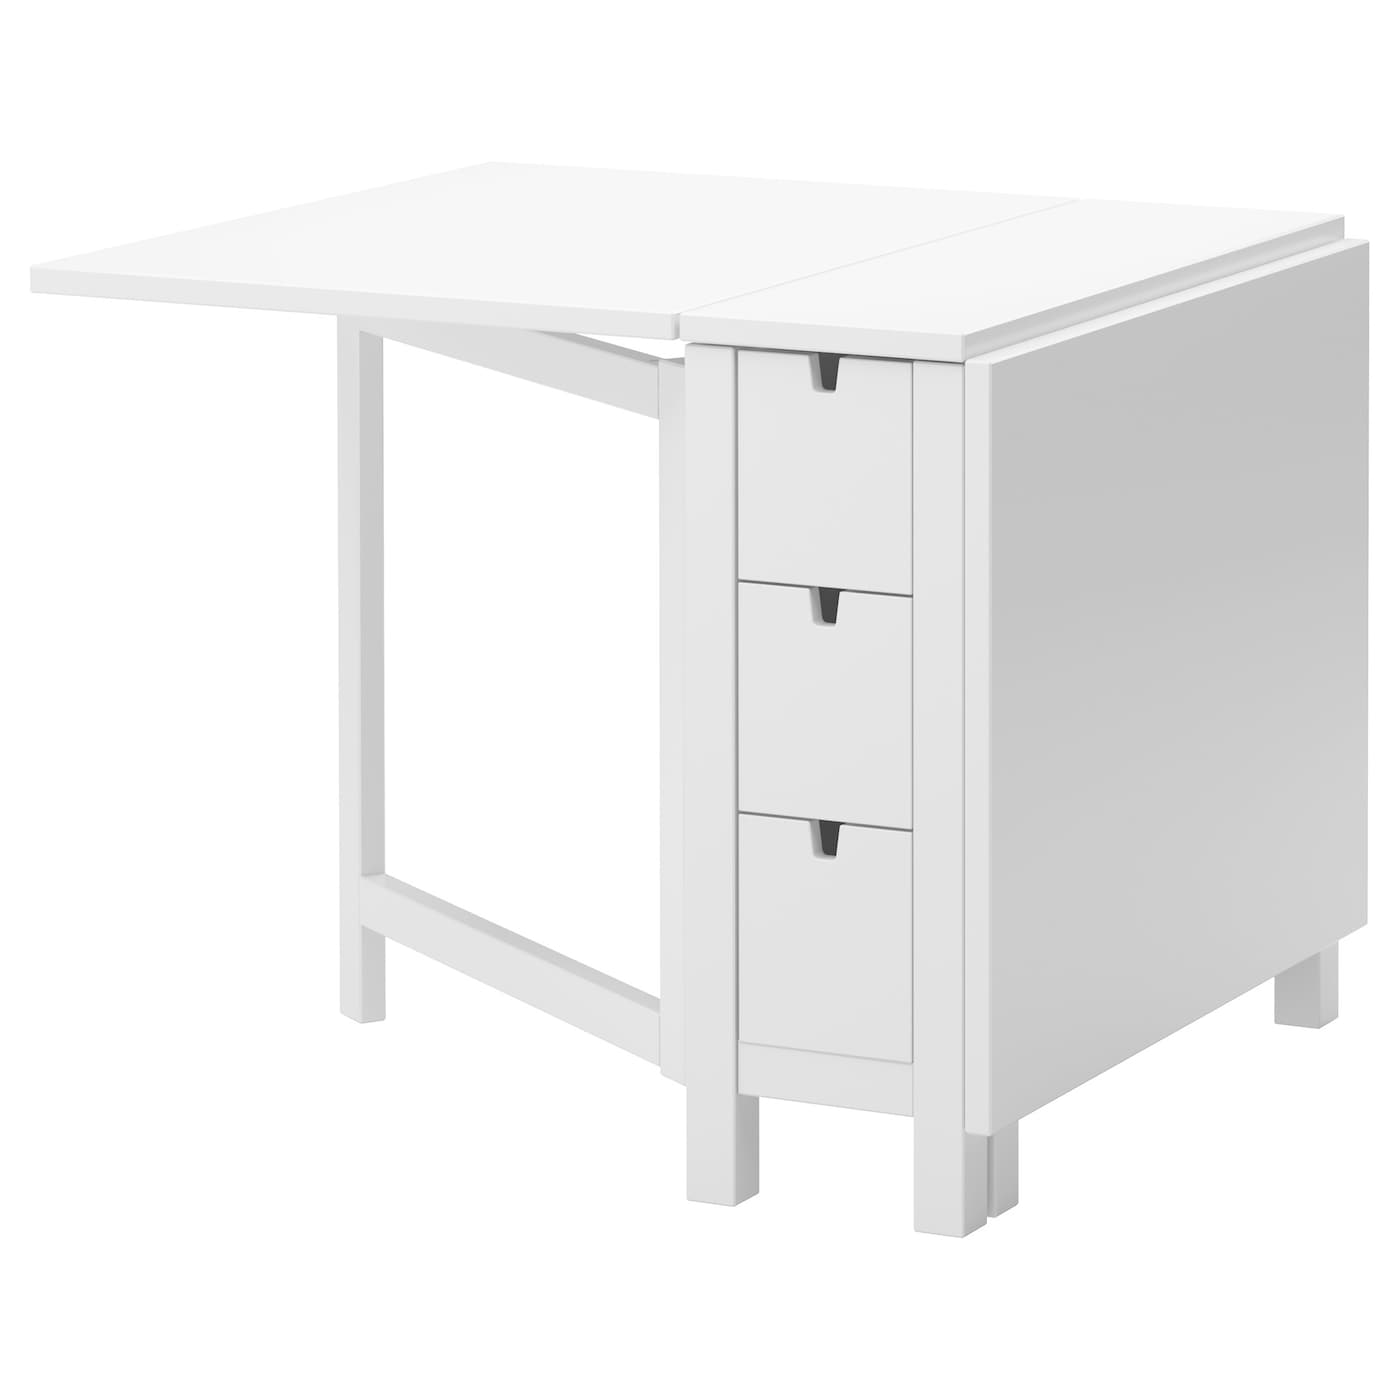 Console table extensible ikea full size of console for Table extensible petit espace